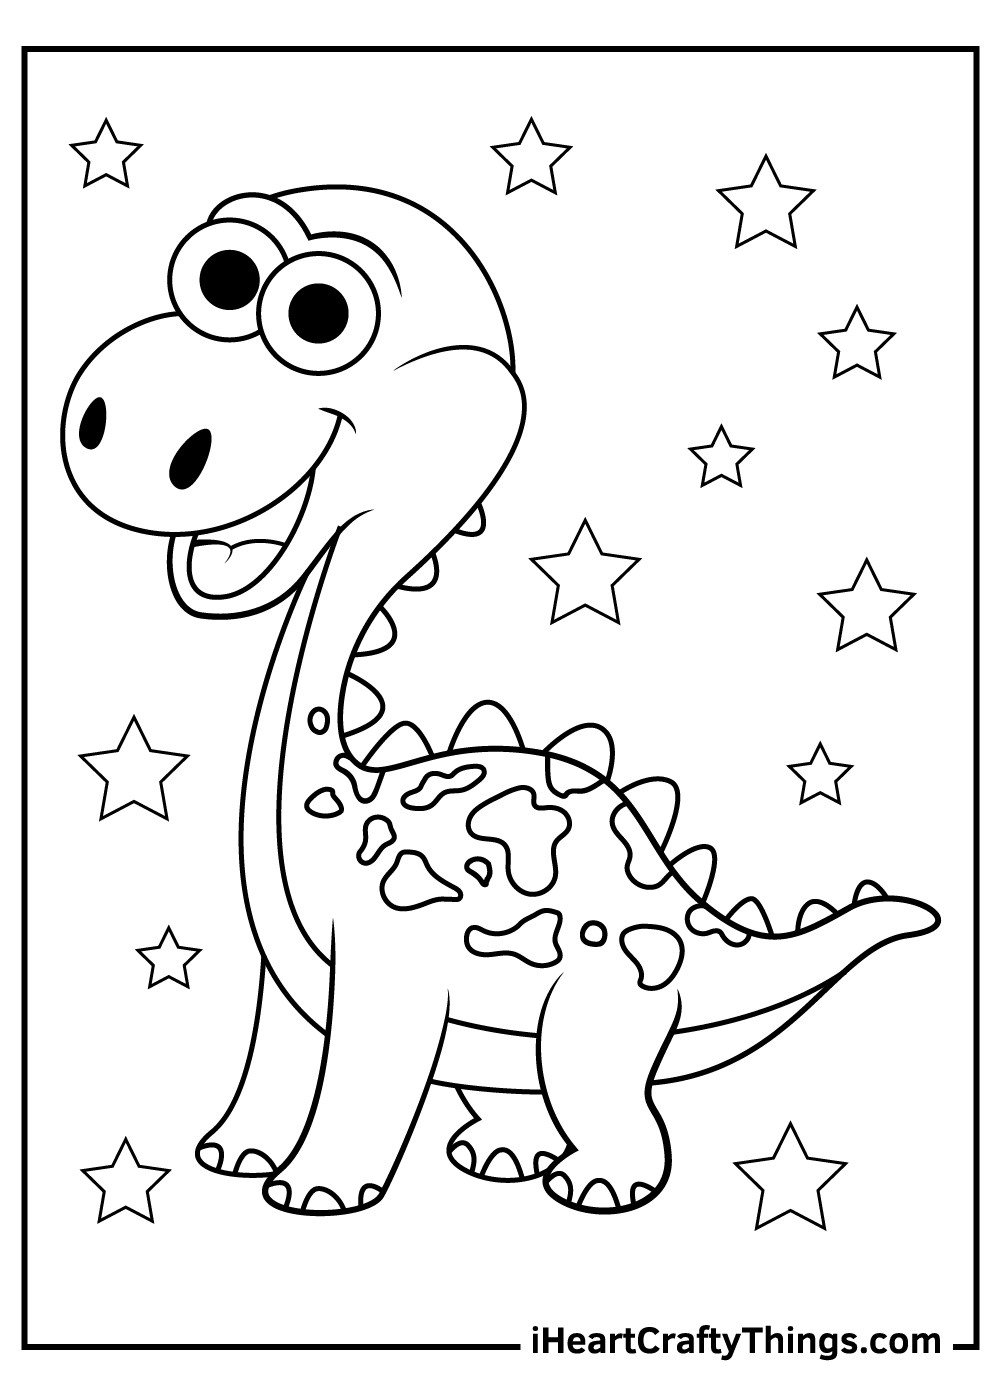 Cute Dinosaurs Coloring Pages for kids free download